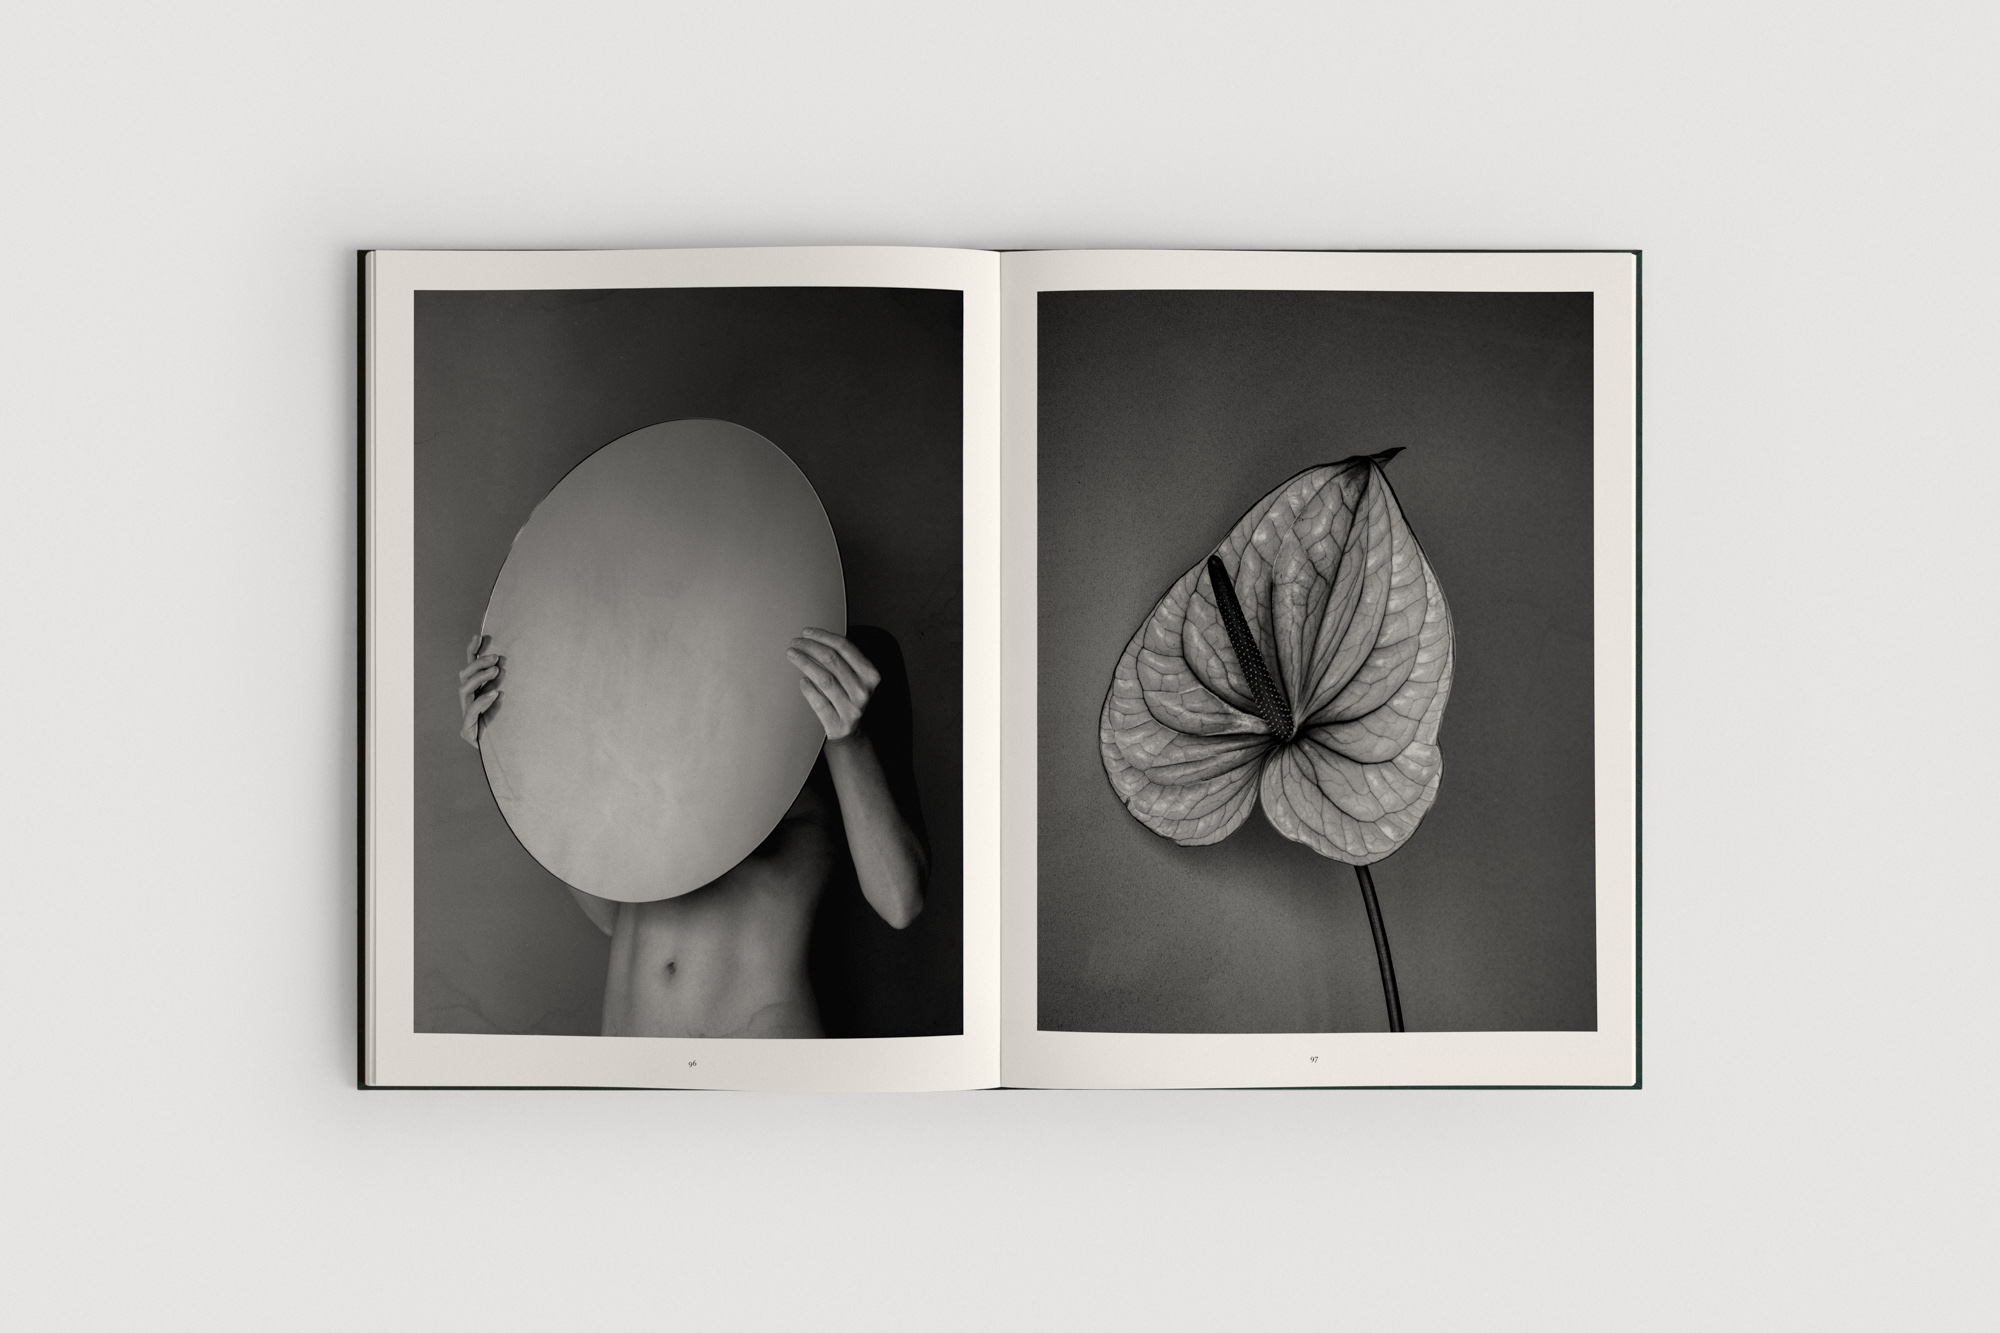 Jonas-Bjerre-Poulsen-The-Reinvention-of-Forms-Book-Packshots-Web-07